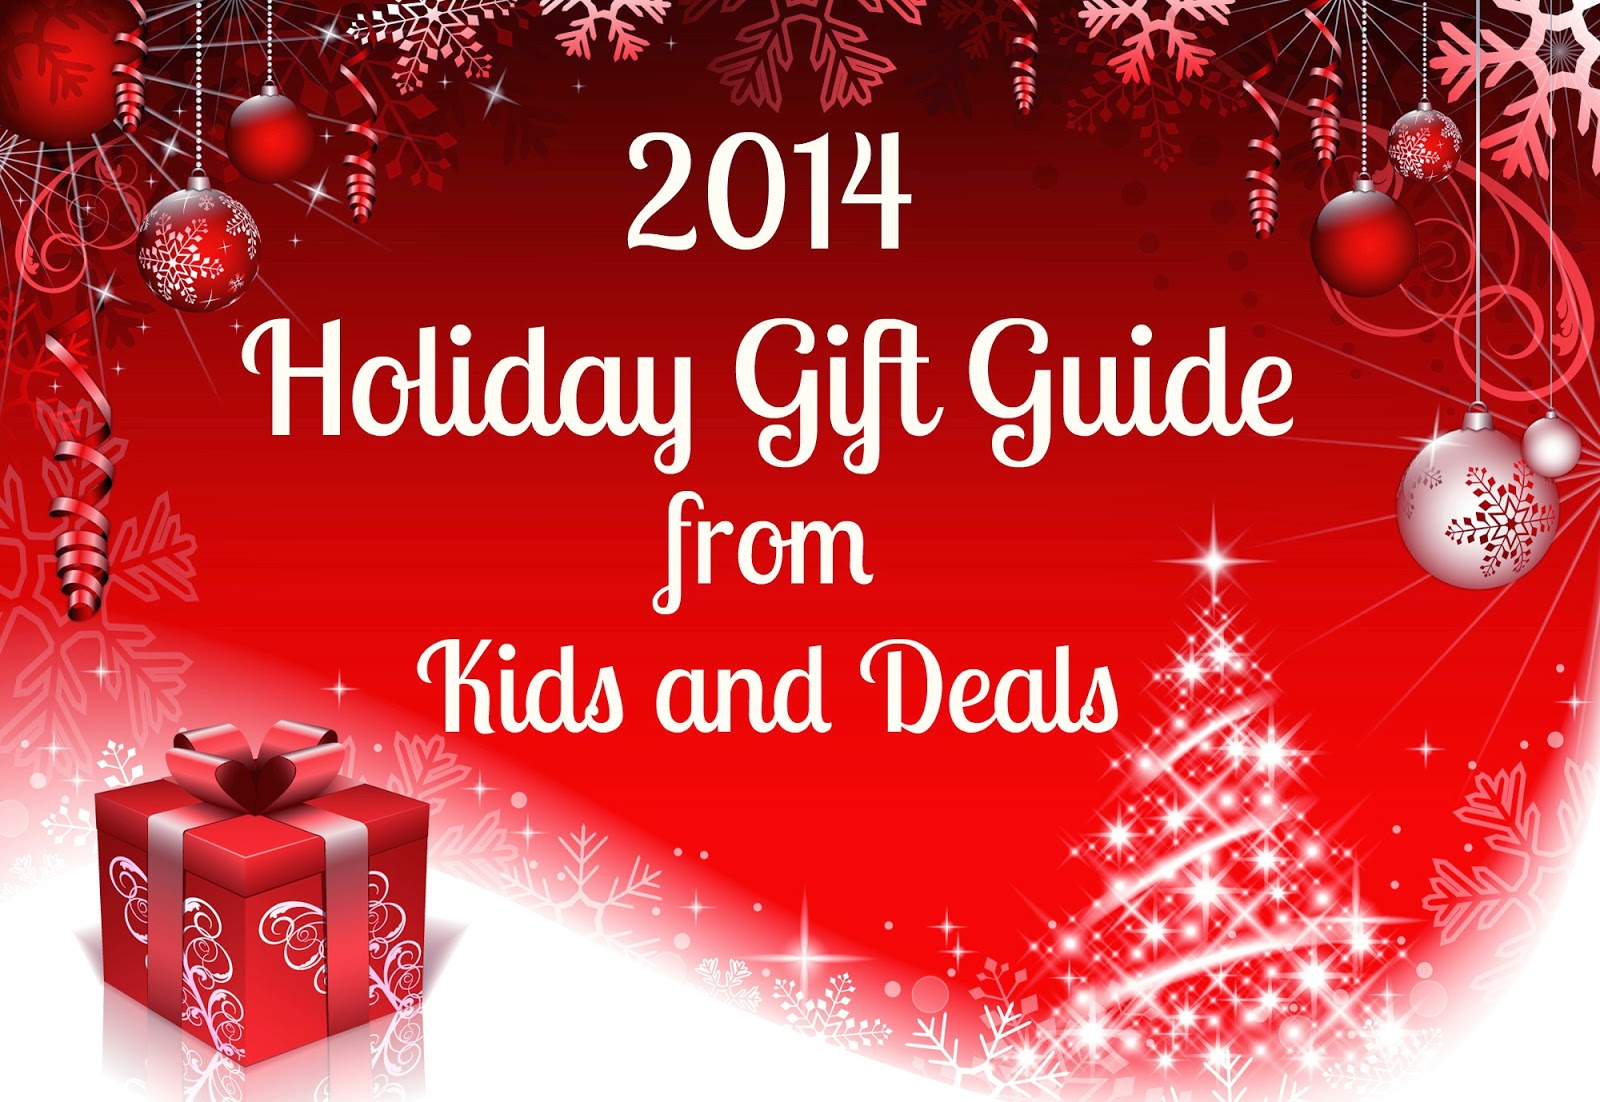 http://kidsanddeals.blogspot.com/2014/11/holiday-gift-guide-kids-books.html